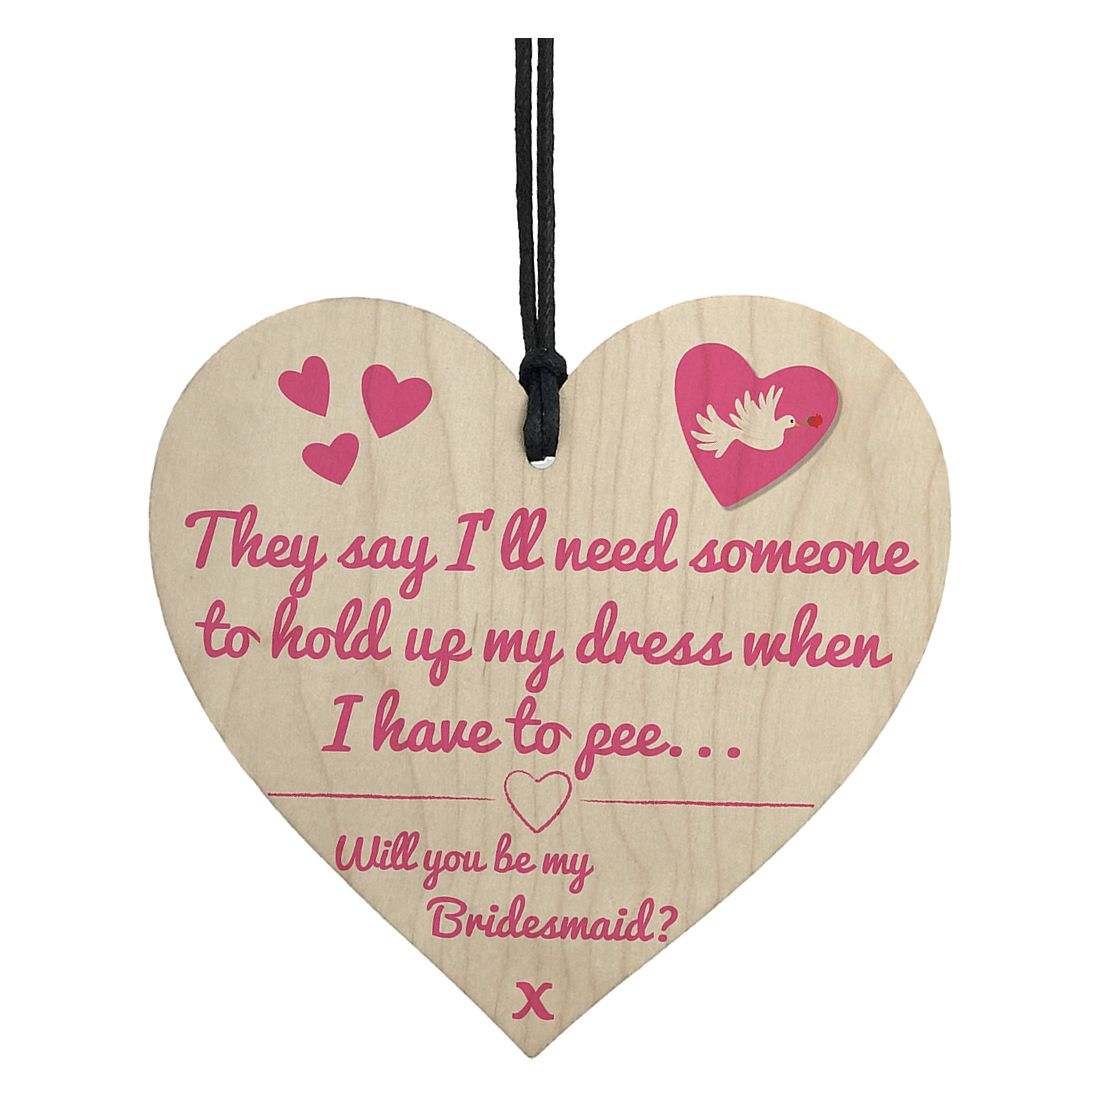 Will you be my Bridesmaid Heart Plaque Maid of Honour Flower Girl Wedding